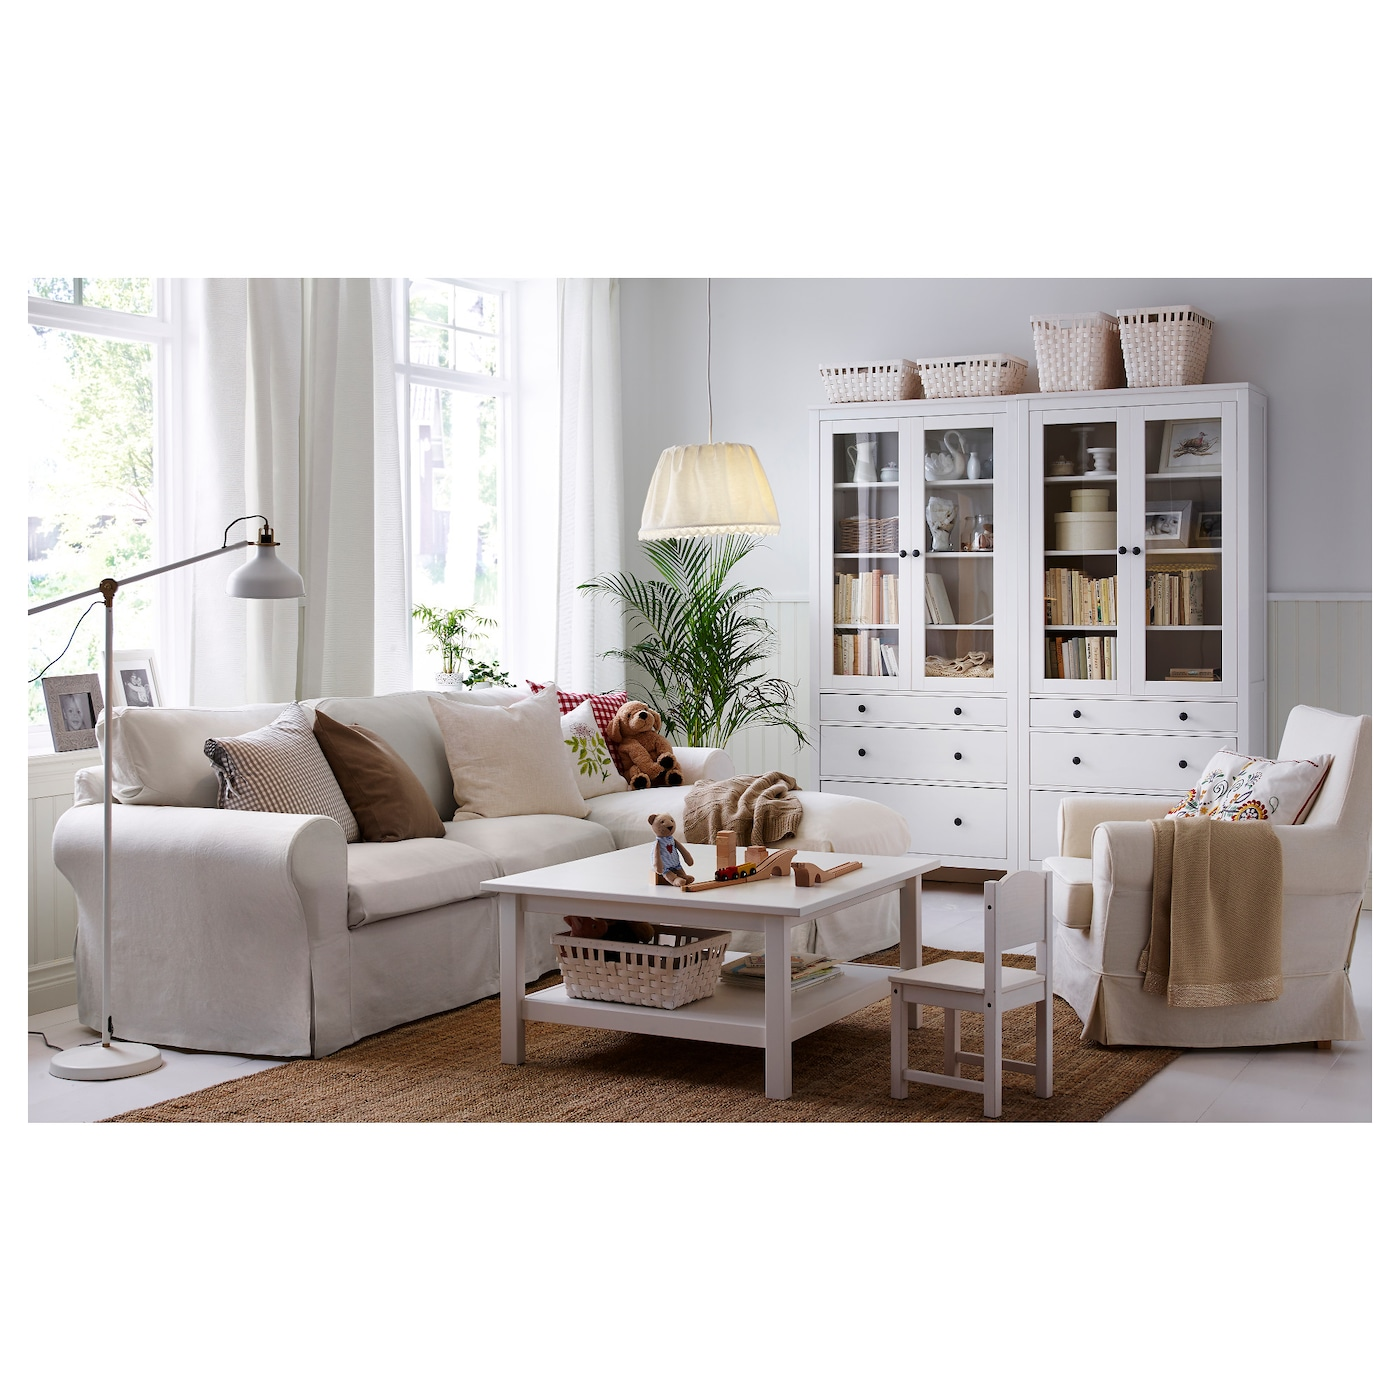 hemnes vitrine trois tiroirs teint blanc 90x197 cm ikea. Black Bedroom Furniture Sets. Home Design Ideas